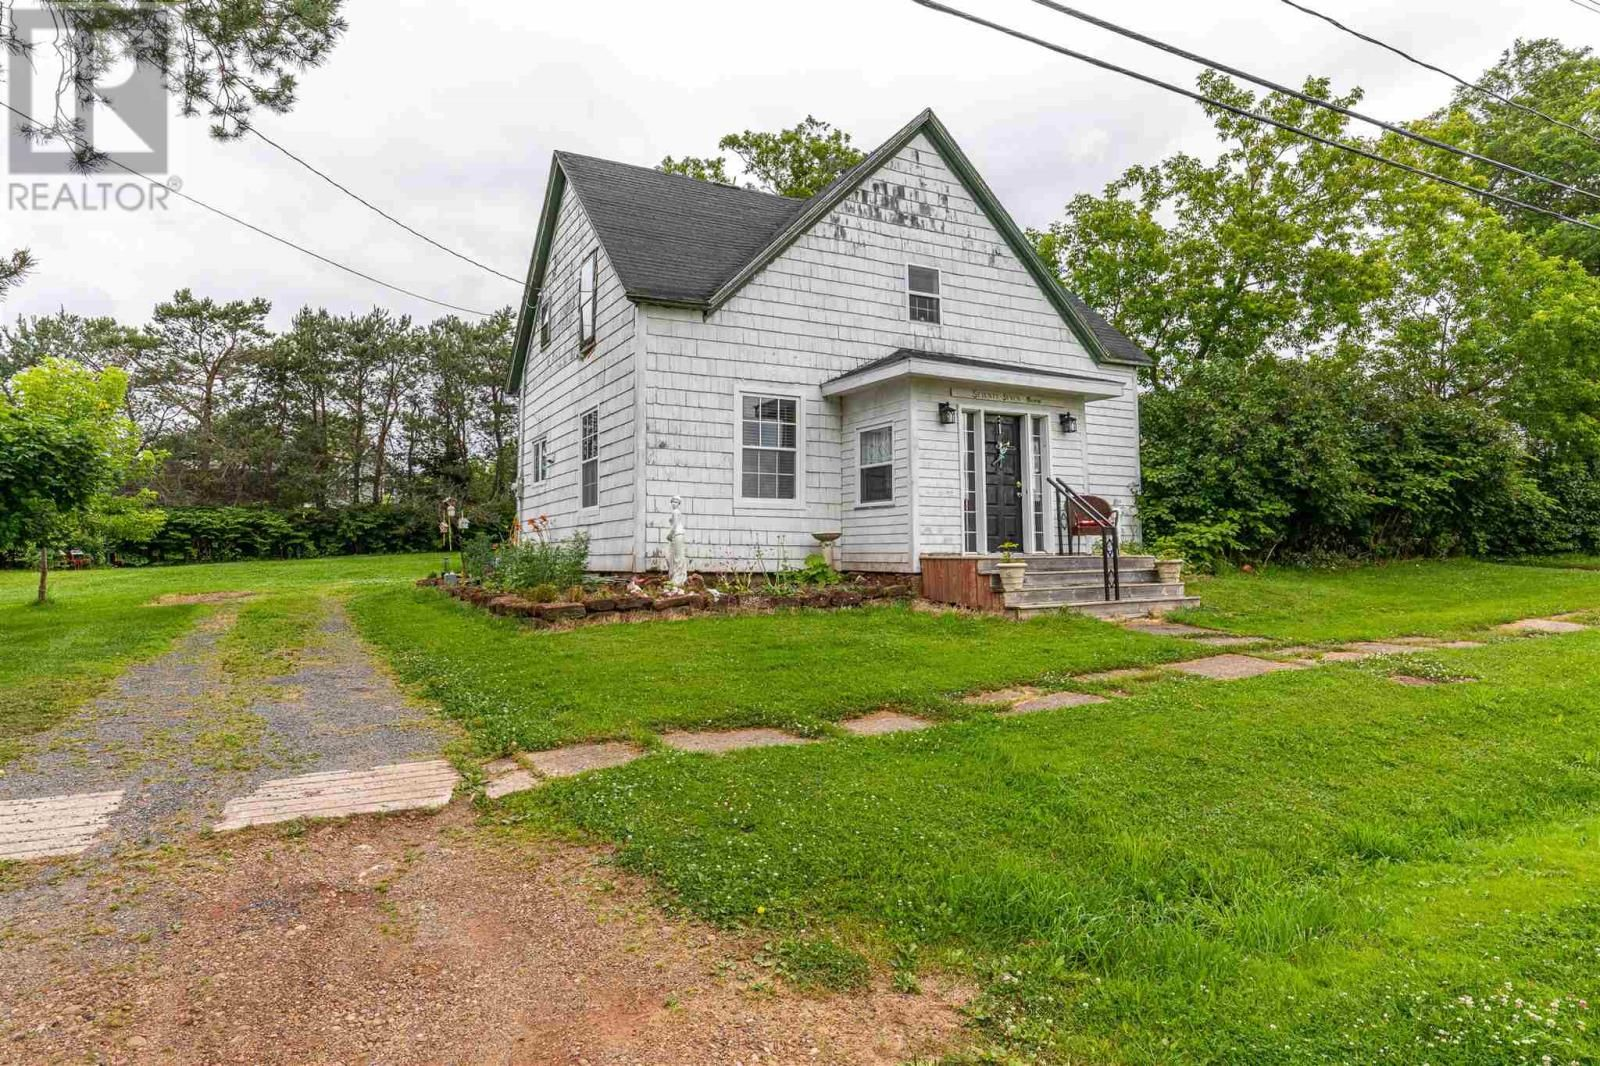 Main Photo: 77 George in Georgetown: House for sale : MLS®# 202119020